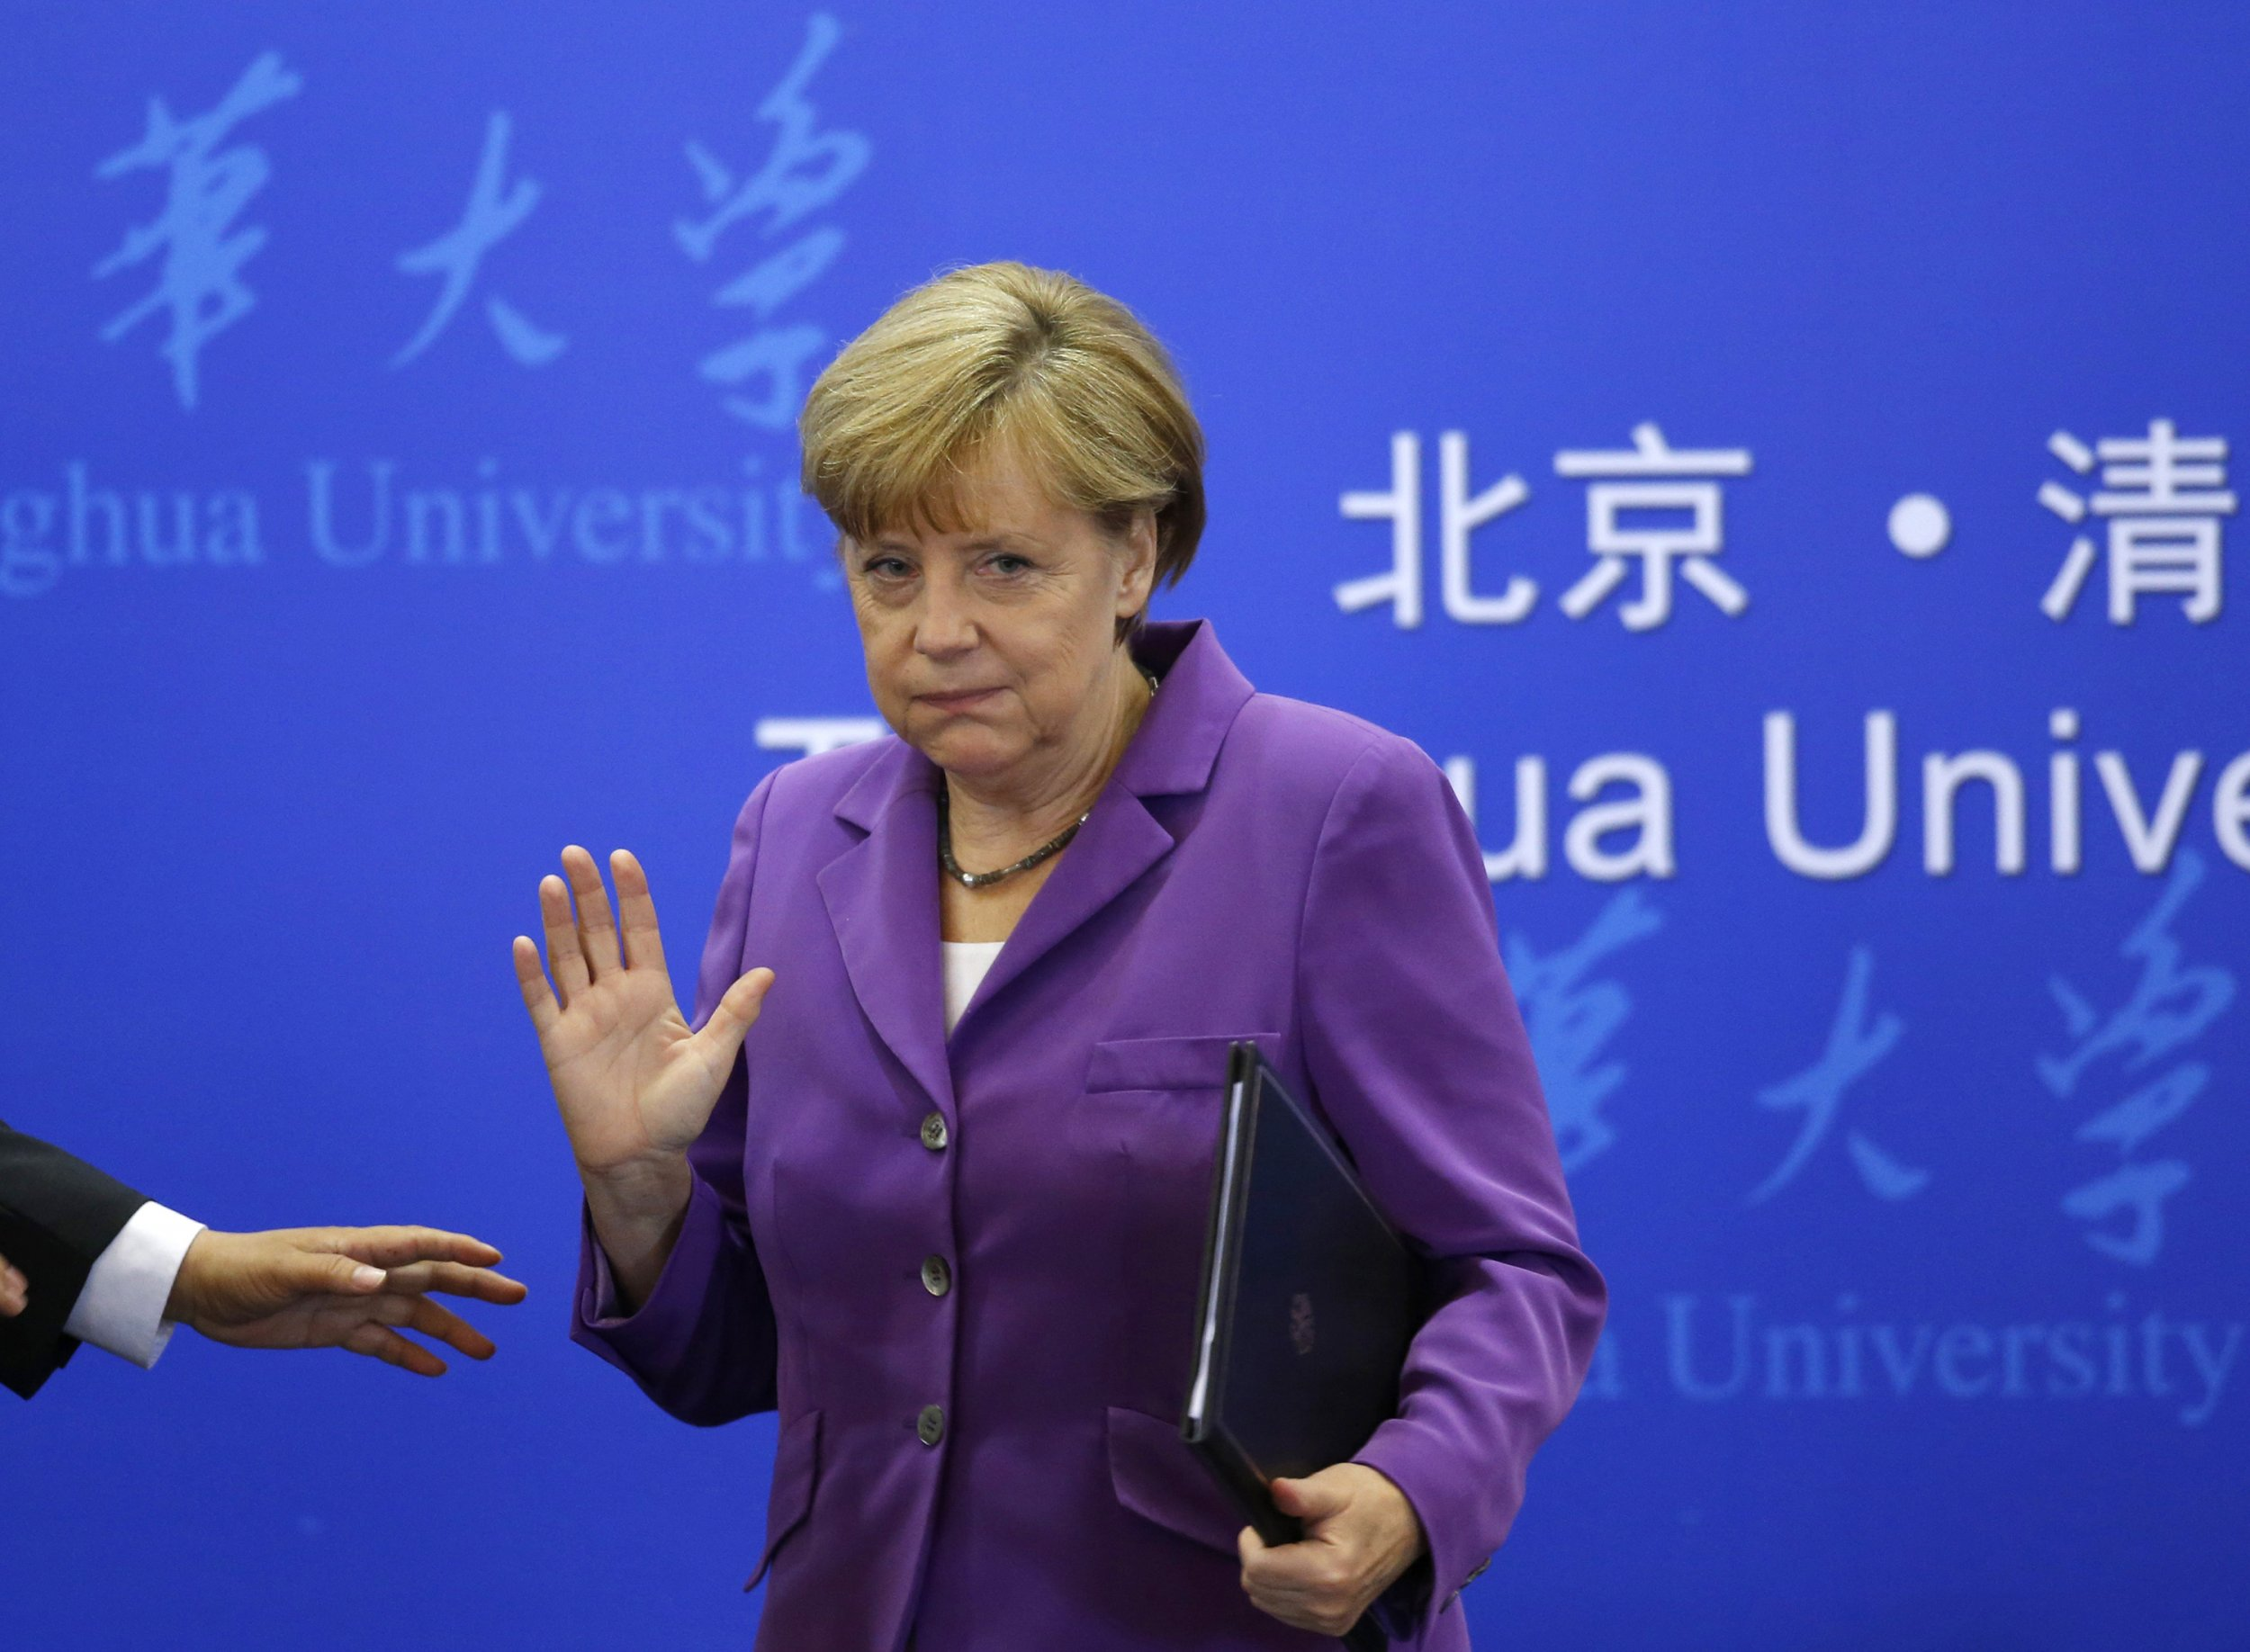 Angela Merkel in Beijing